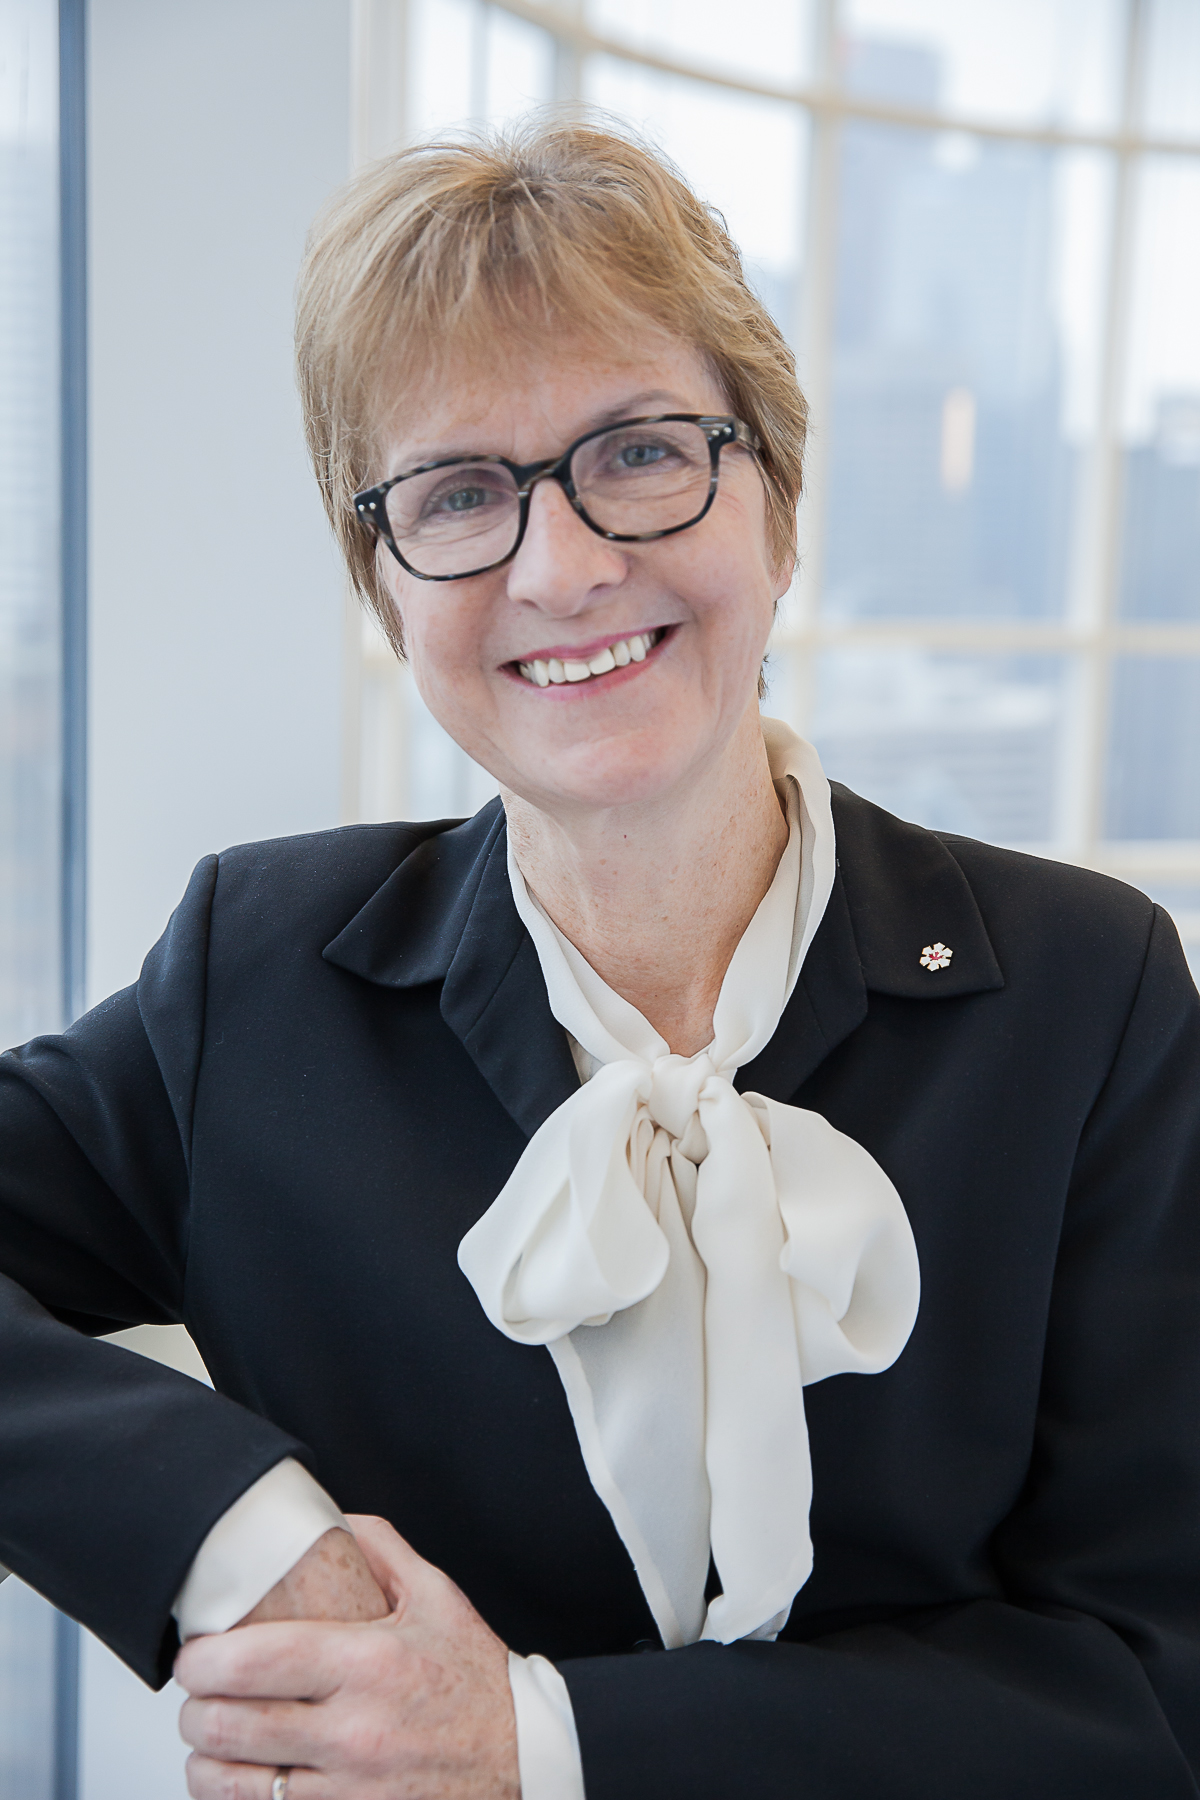 OFFICIAL PHOTO - Dr. Janet Rossant - Photo Credit: The Canada Gairdner Foundation - Received on April 5, 2016